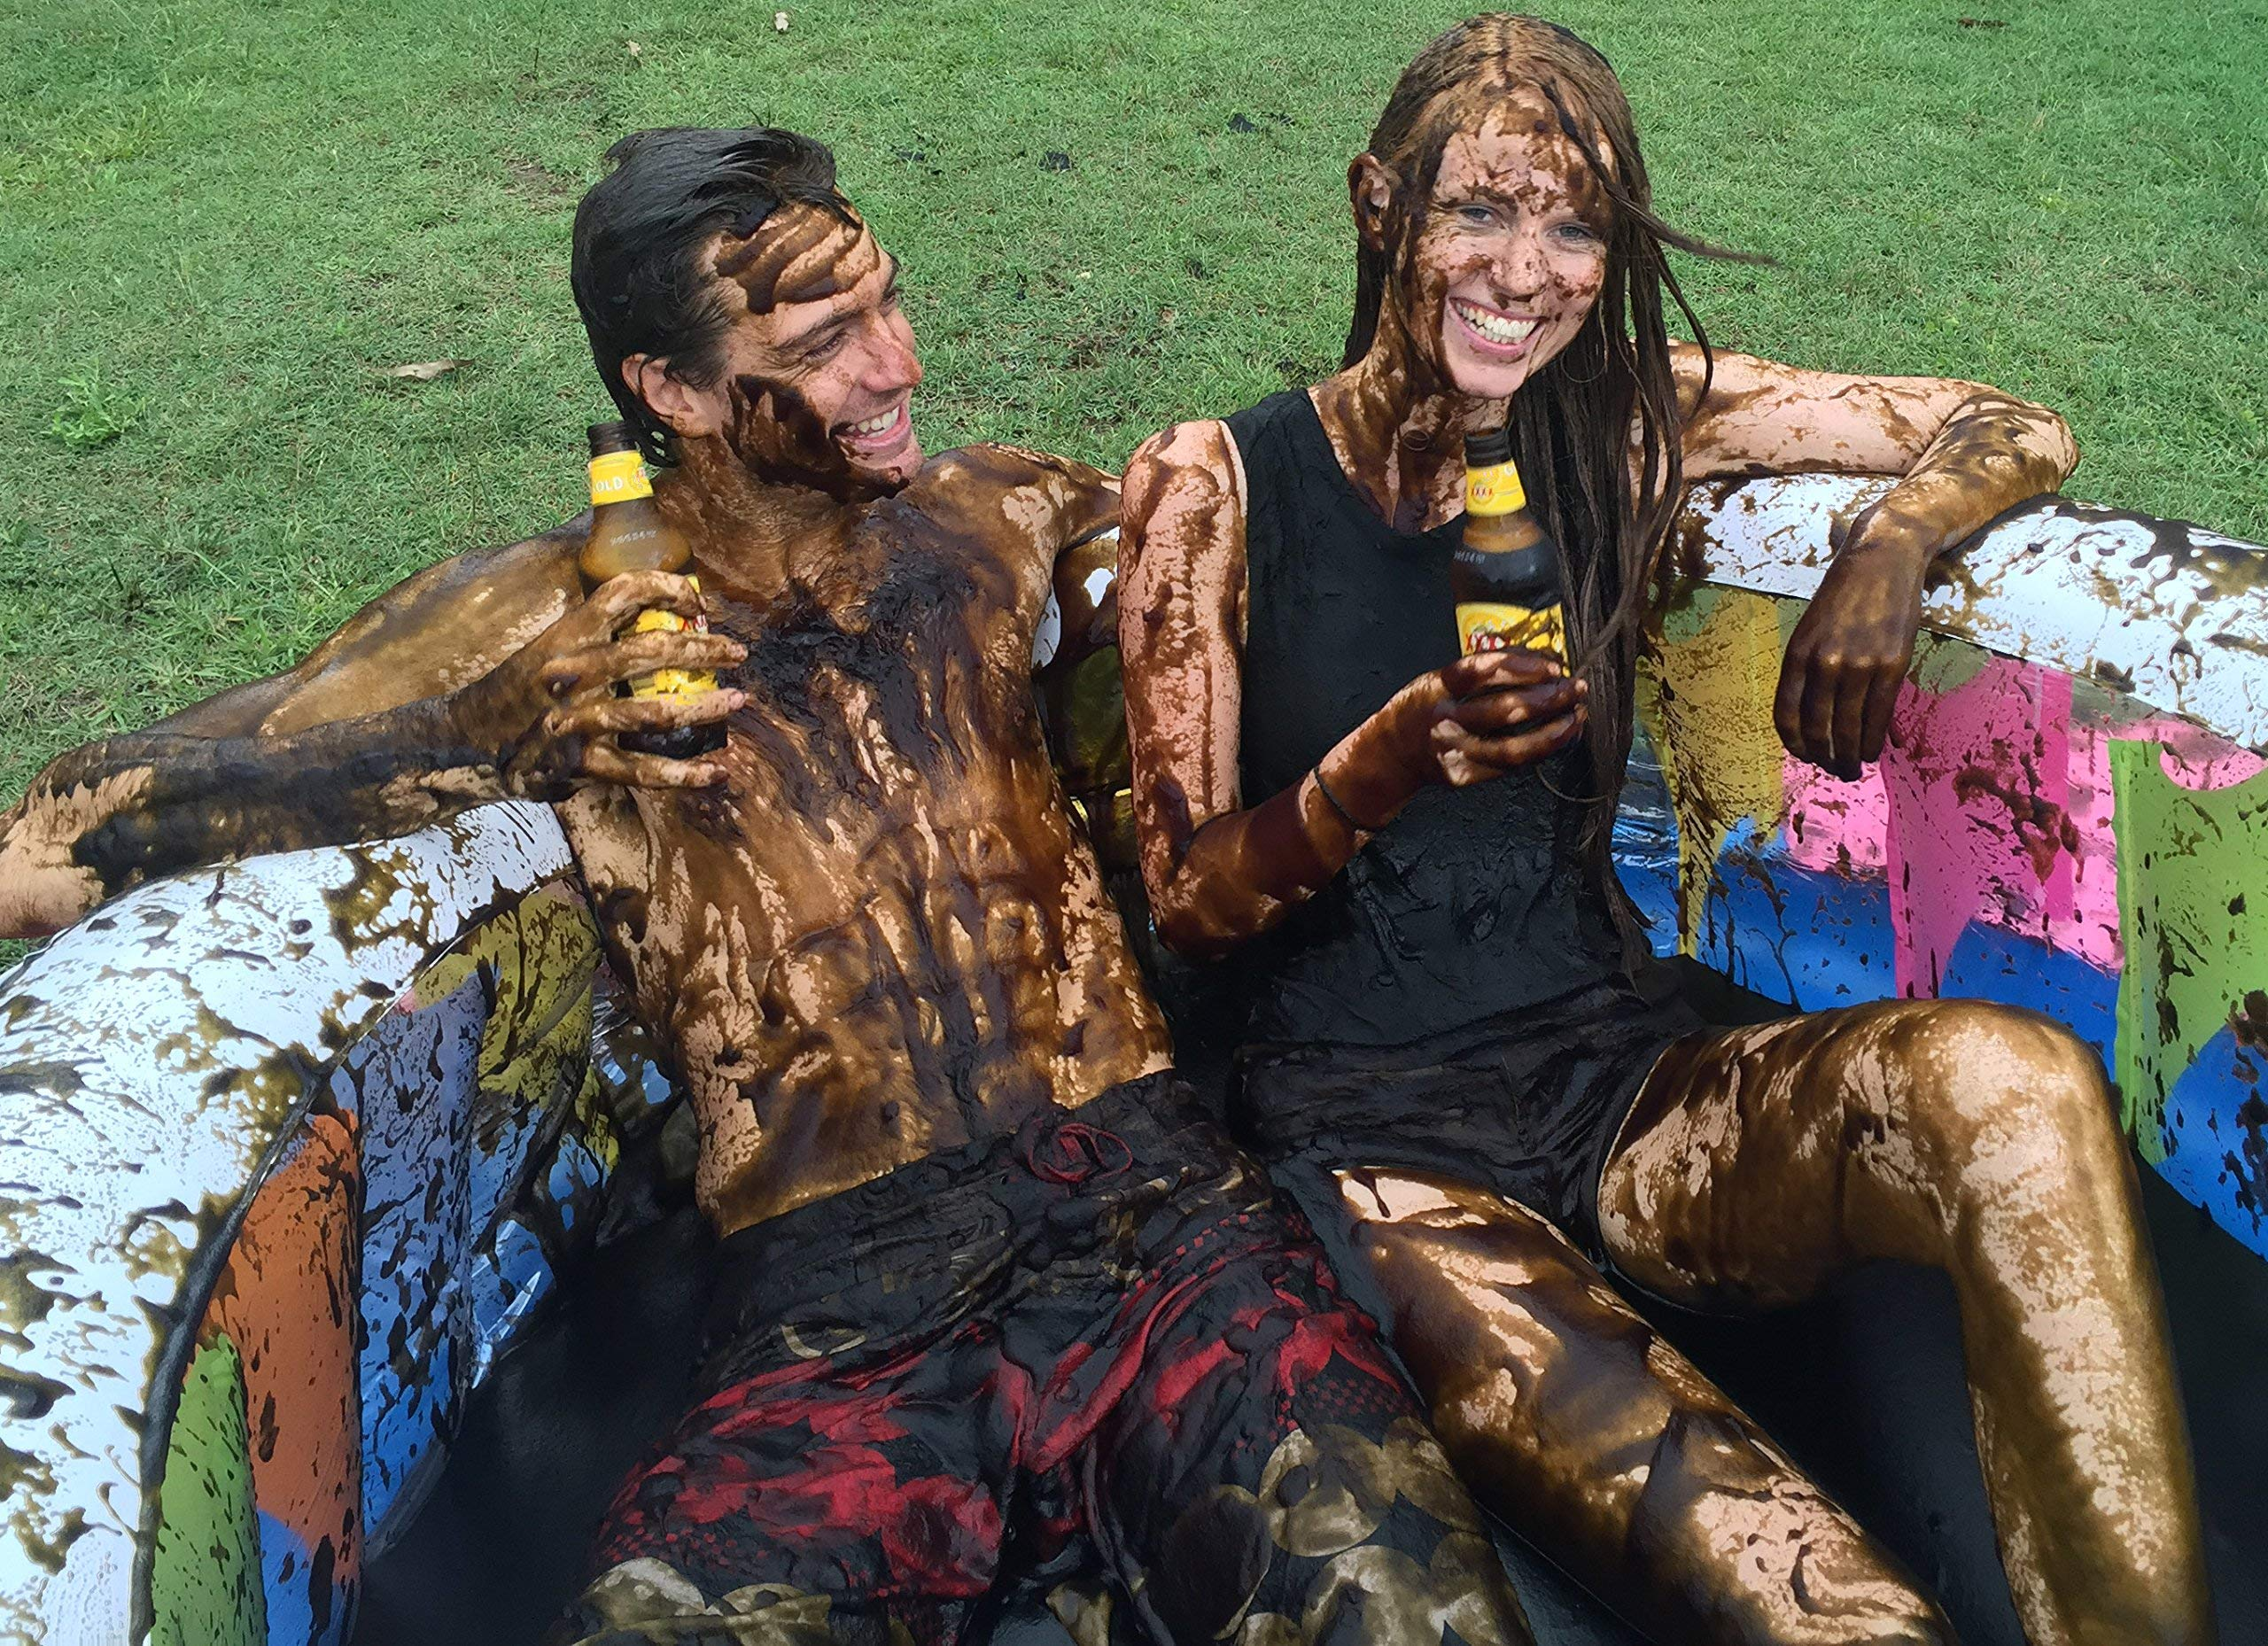 INSTANT MUD for Wrestling, Mud Pies, Balloons & Bombs JUST ADD WATER Bulk Mud powder makes 60 GALLONS of fake mud. Safe, clean mud run obstacle pits, pitch burst, Slime sludge messy kit oil tar by JelloWrestlingSupply.com (Image #8)